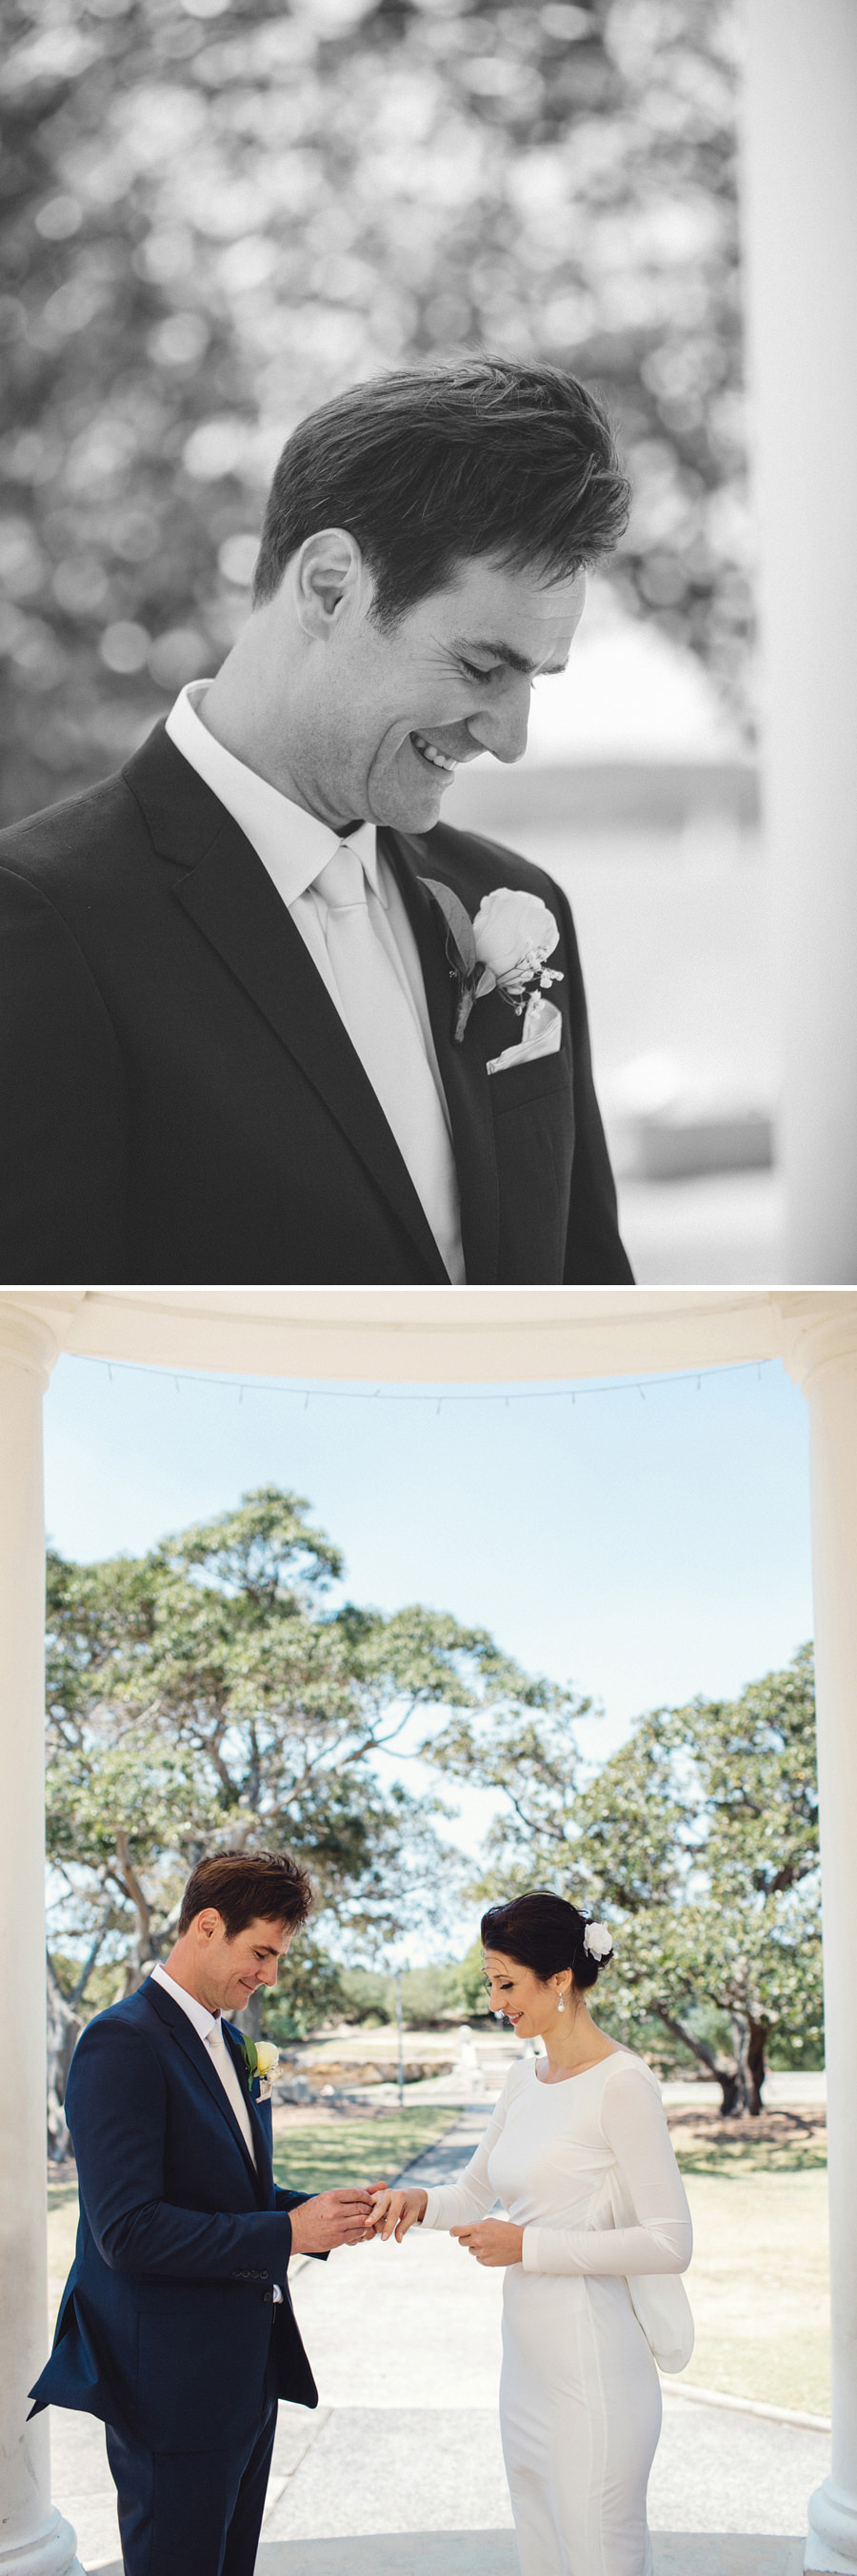 Mosman Wedding Photographer: Ceremony